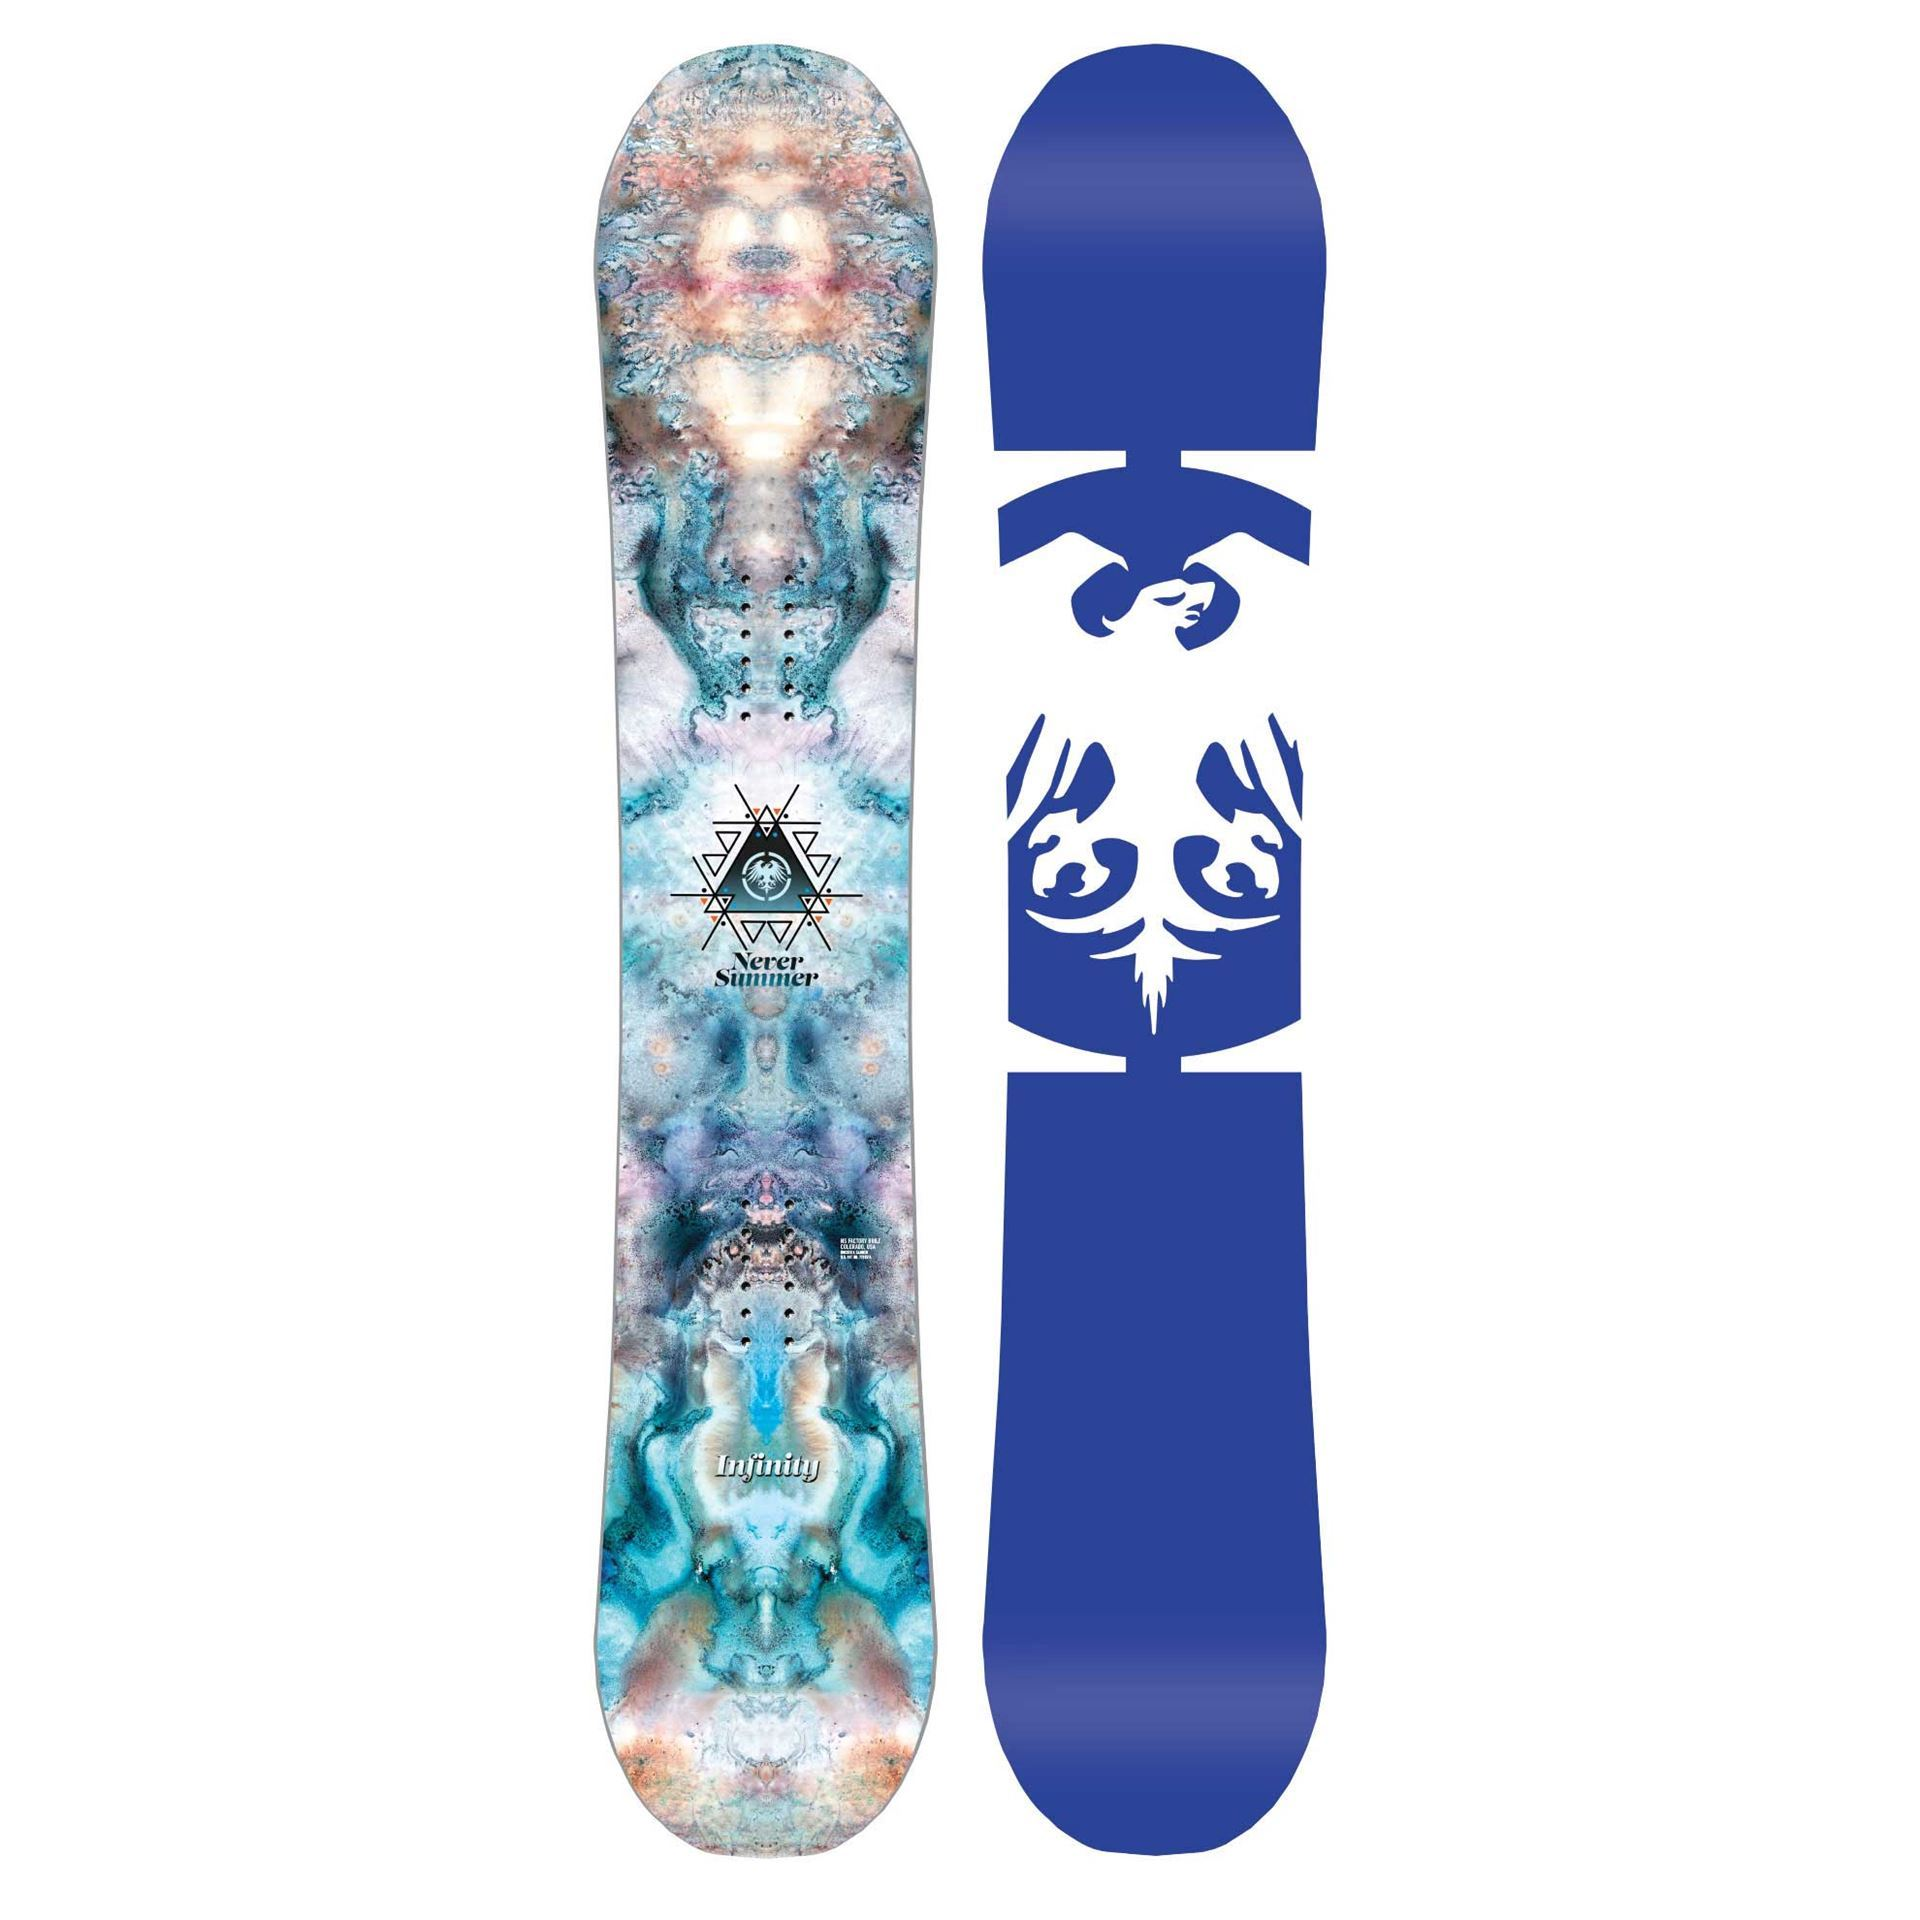 Never Summer Infinity Snowboard 2019